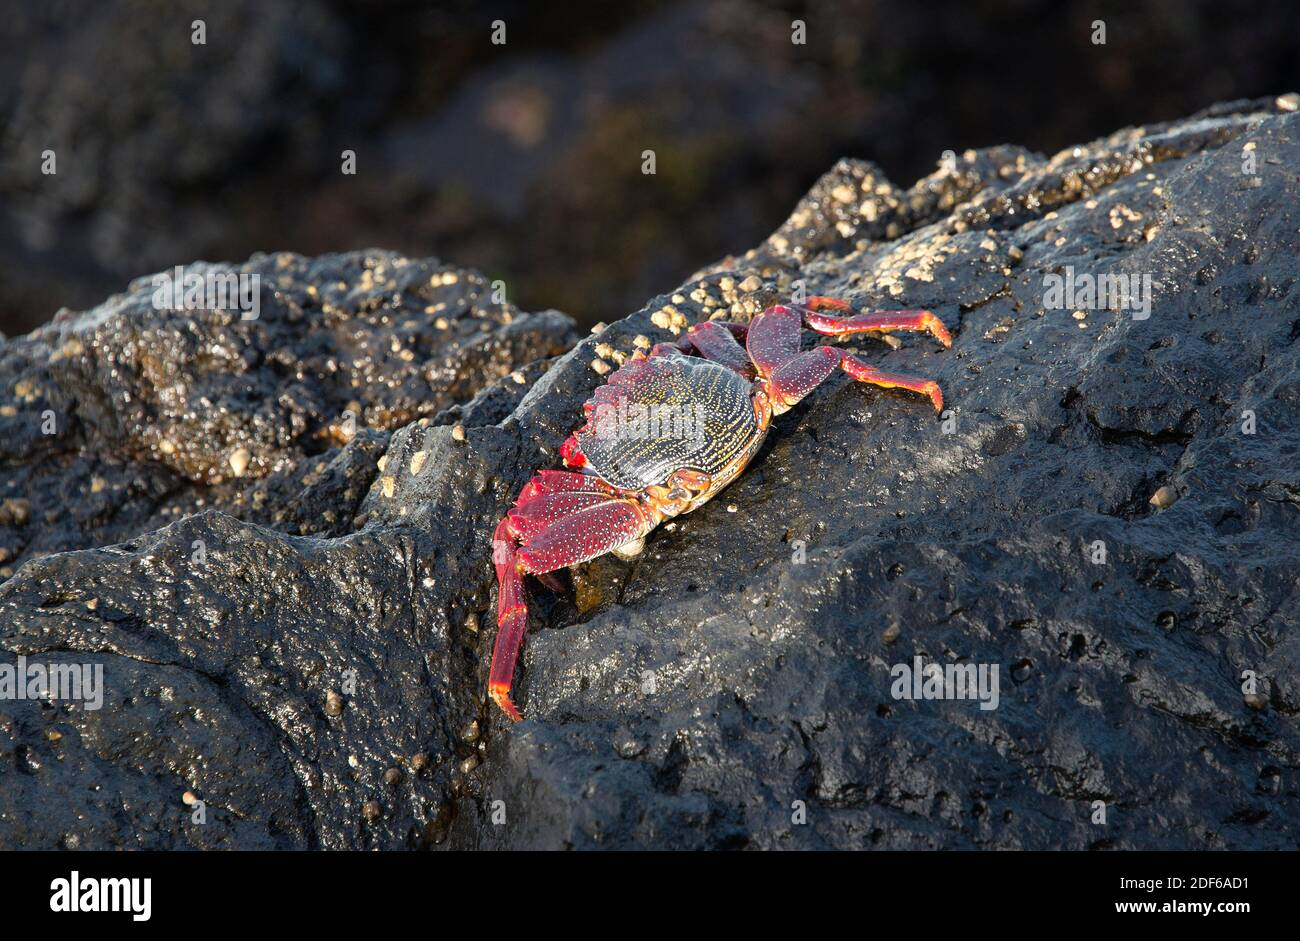 Red rock crab (Grapsus adscensionis) in the coast of San Andres, La Palma (Canary Islands). Stock Photo